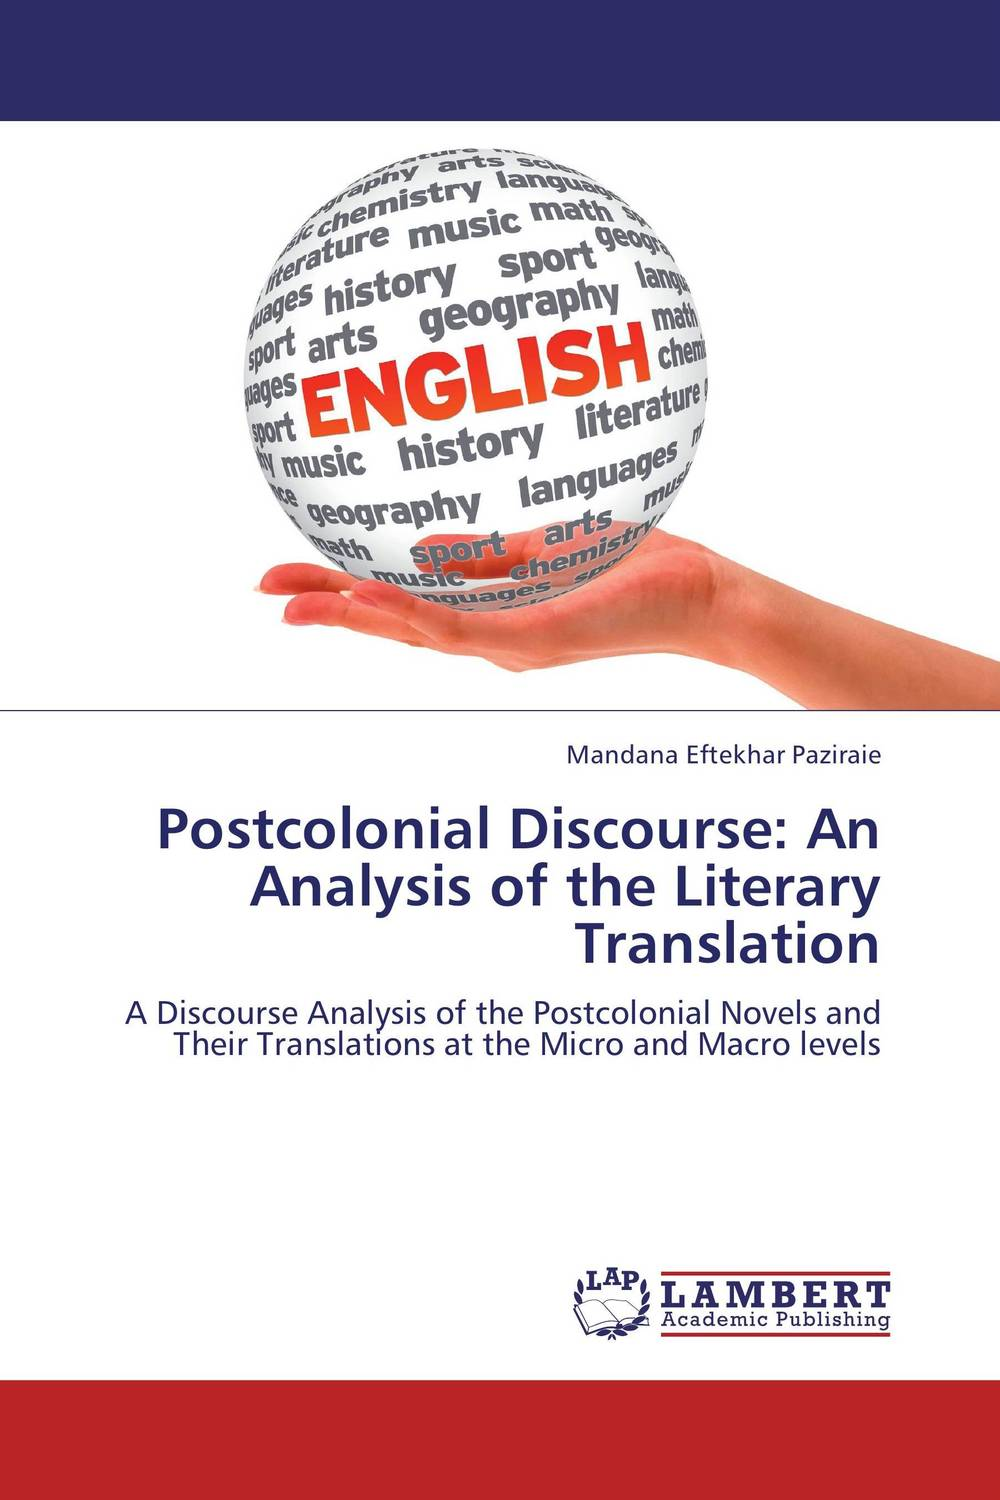 Postcolonial Discourse: An Analysis of the Literary Translation cultural and linguistic hybridity in postcolonial text